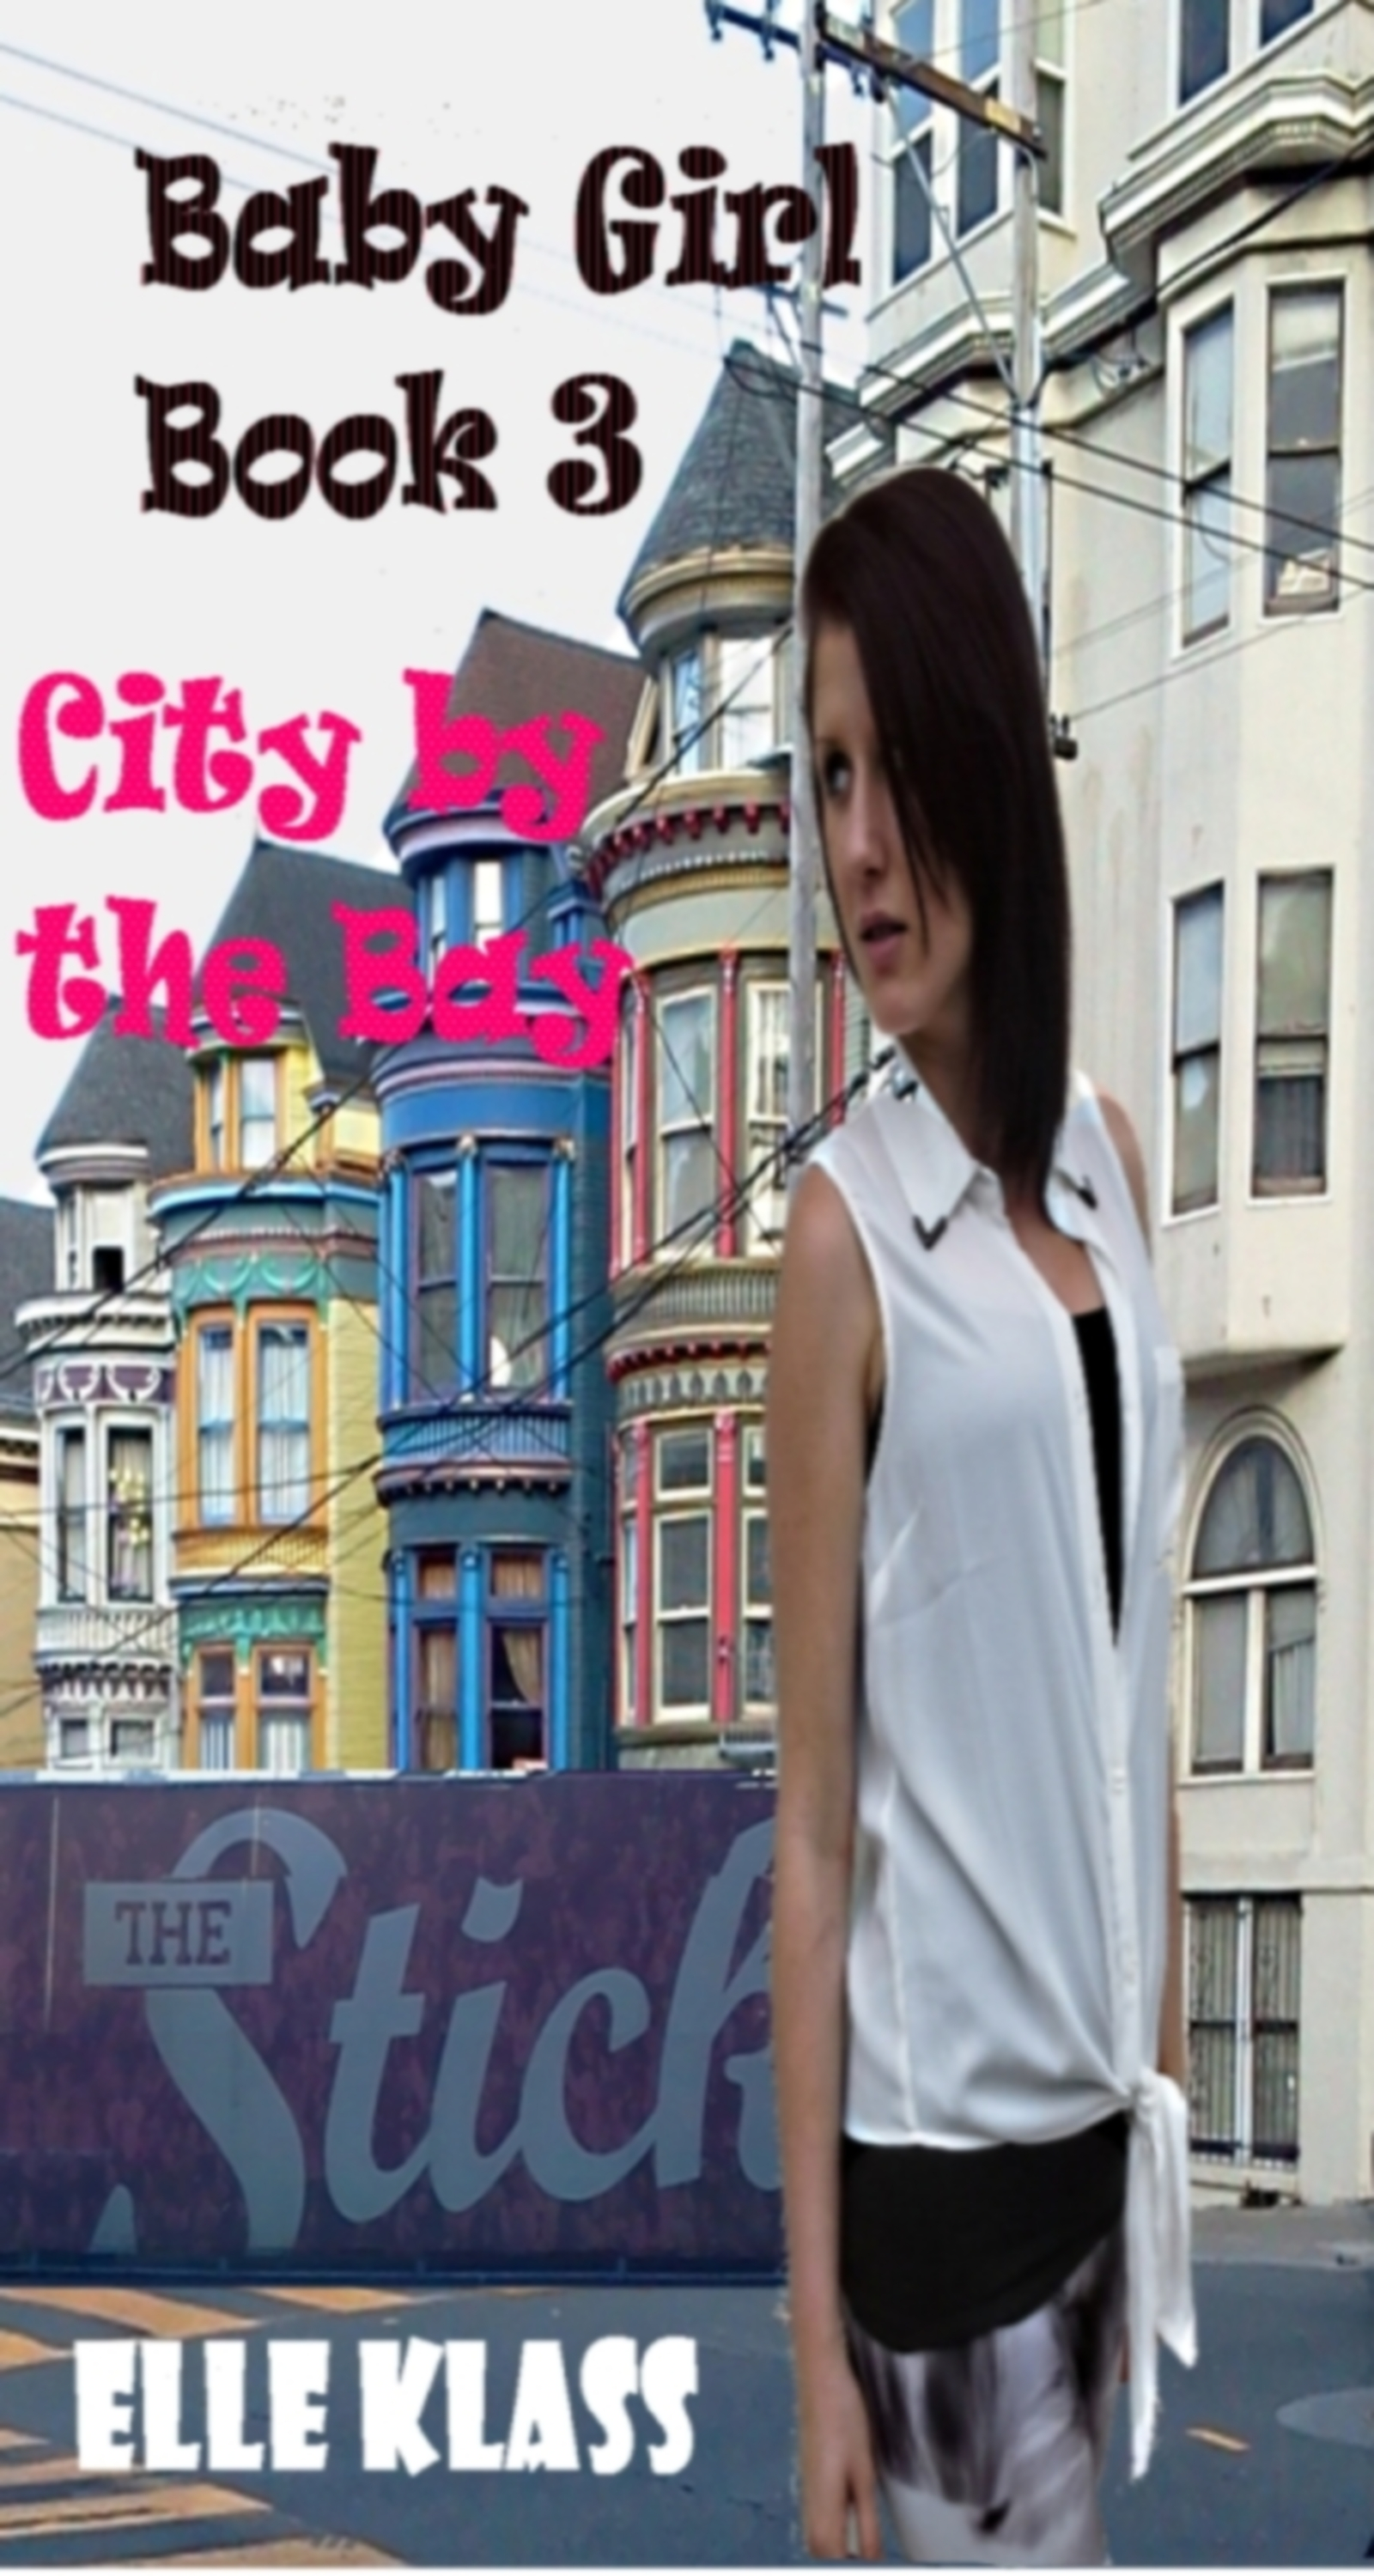 Baby Girl Book 3: City by the Bay